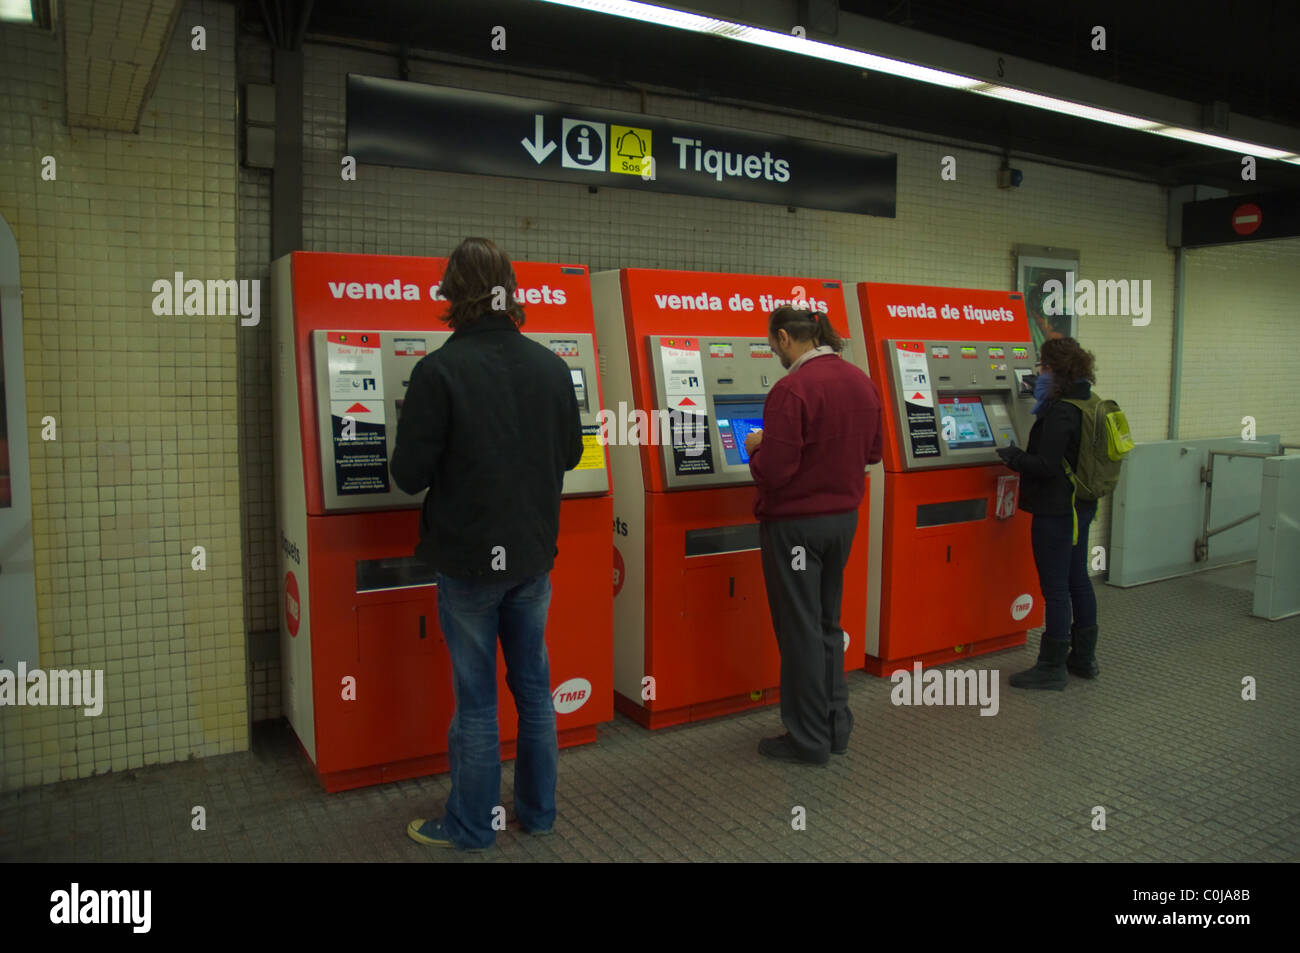 People buying tickets at Jaume I metro station central Barcelona Catalunya Spain Europe - Stock Image